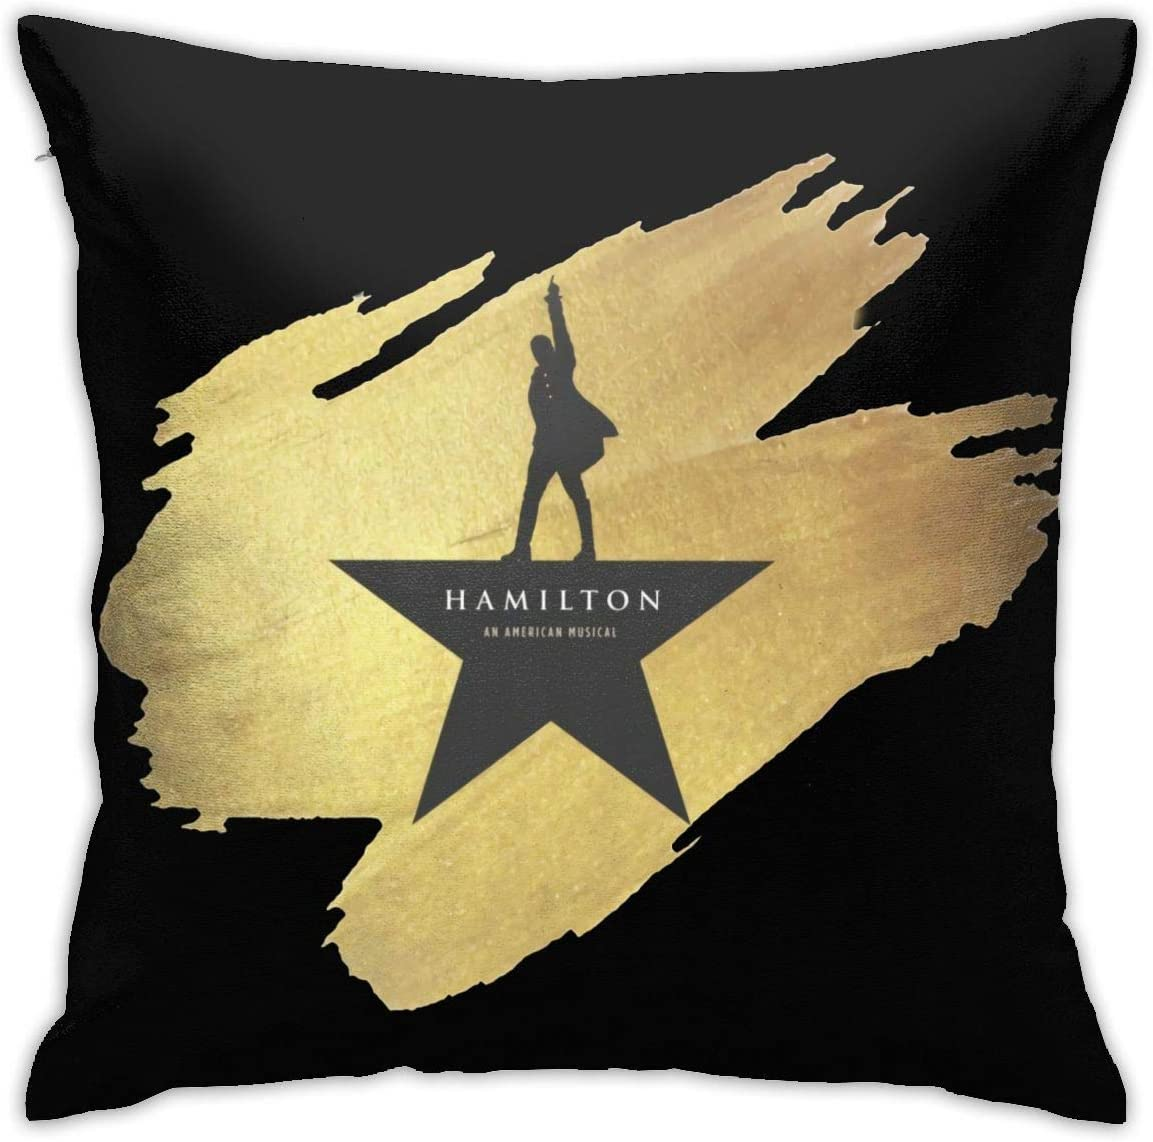 KarleDeal Hamilton The Musical Pillowcase Fashion Square Throw Pillow Covers Home Office Pillow 18 Inch18 Inch